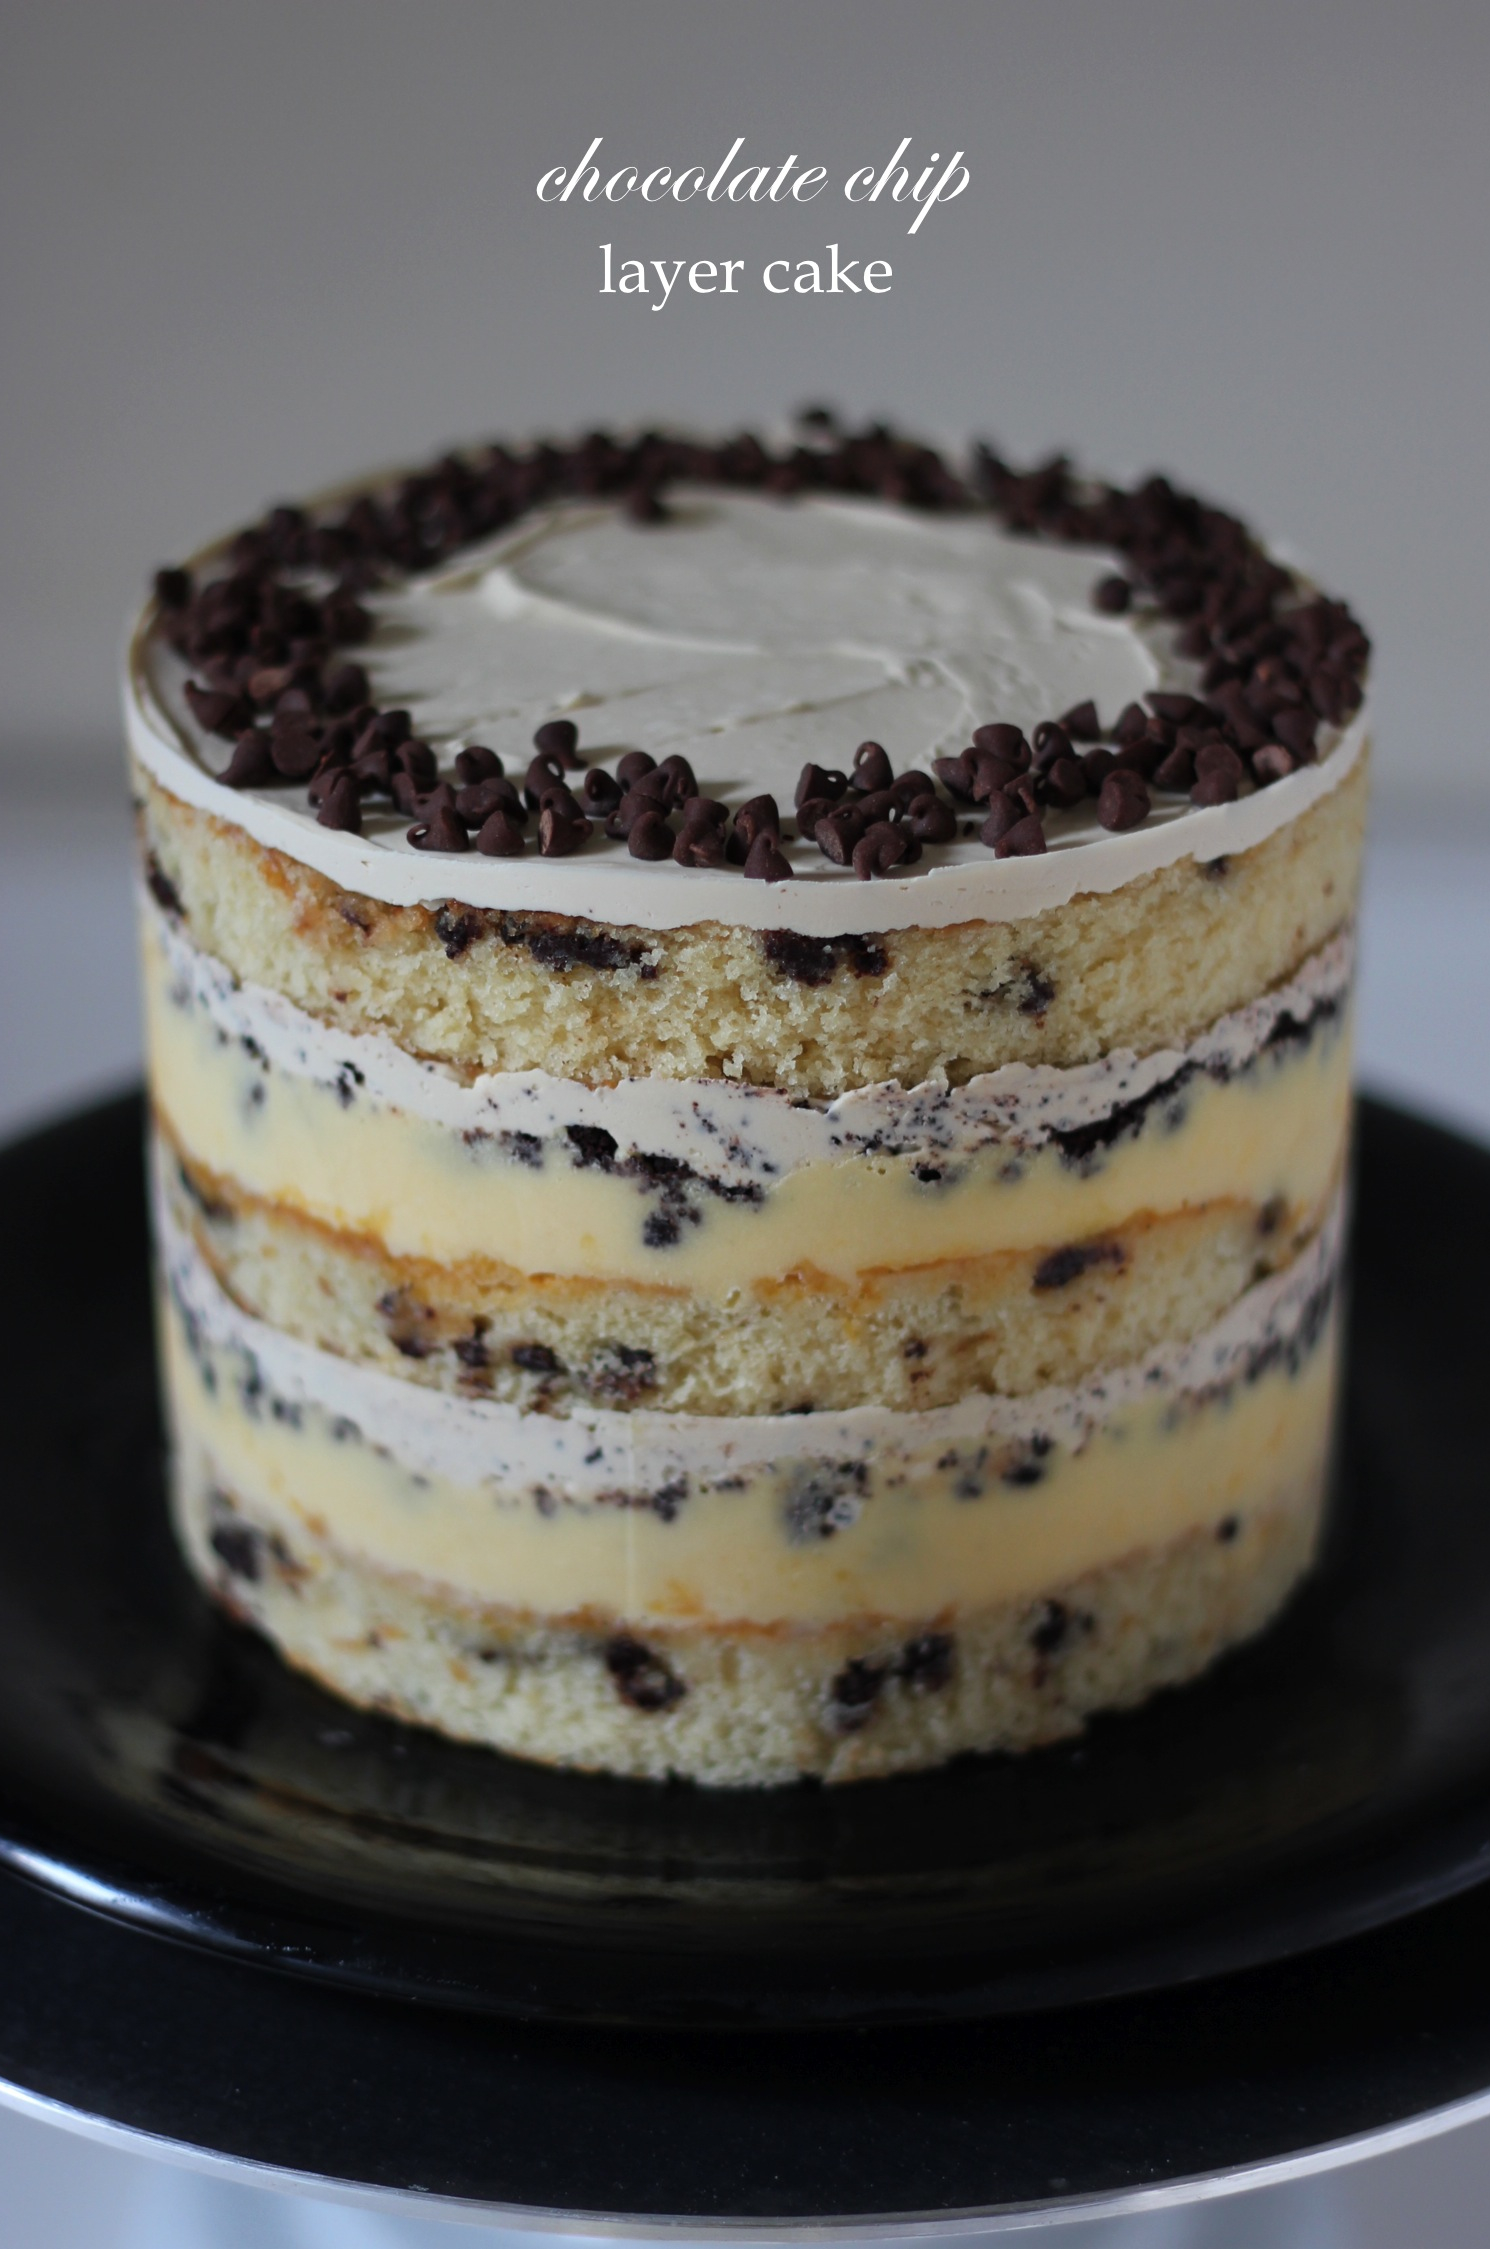 chocolatechipcake1